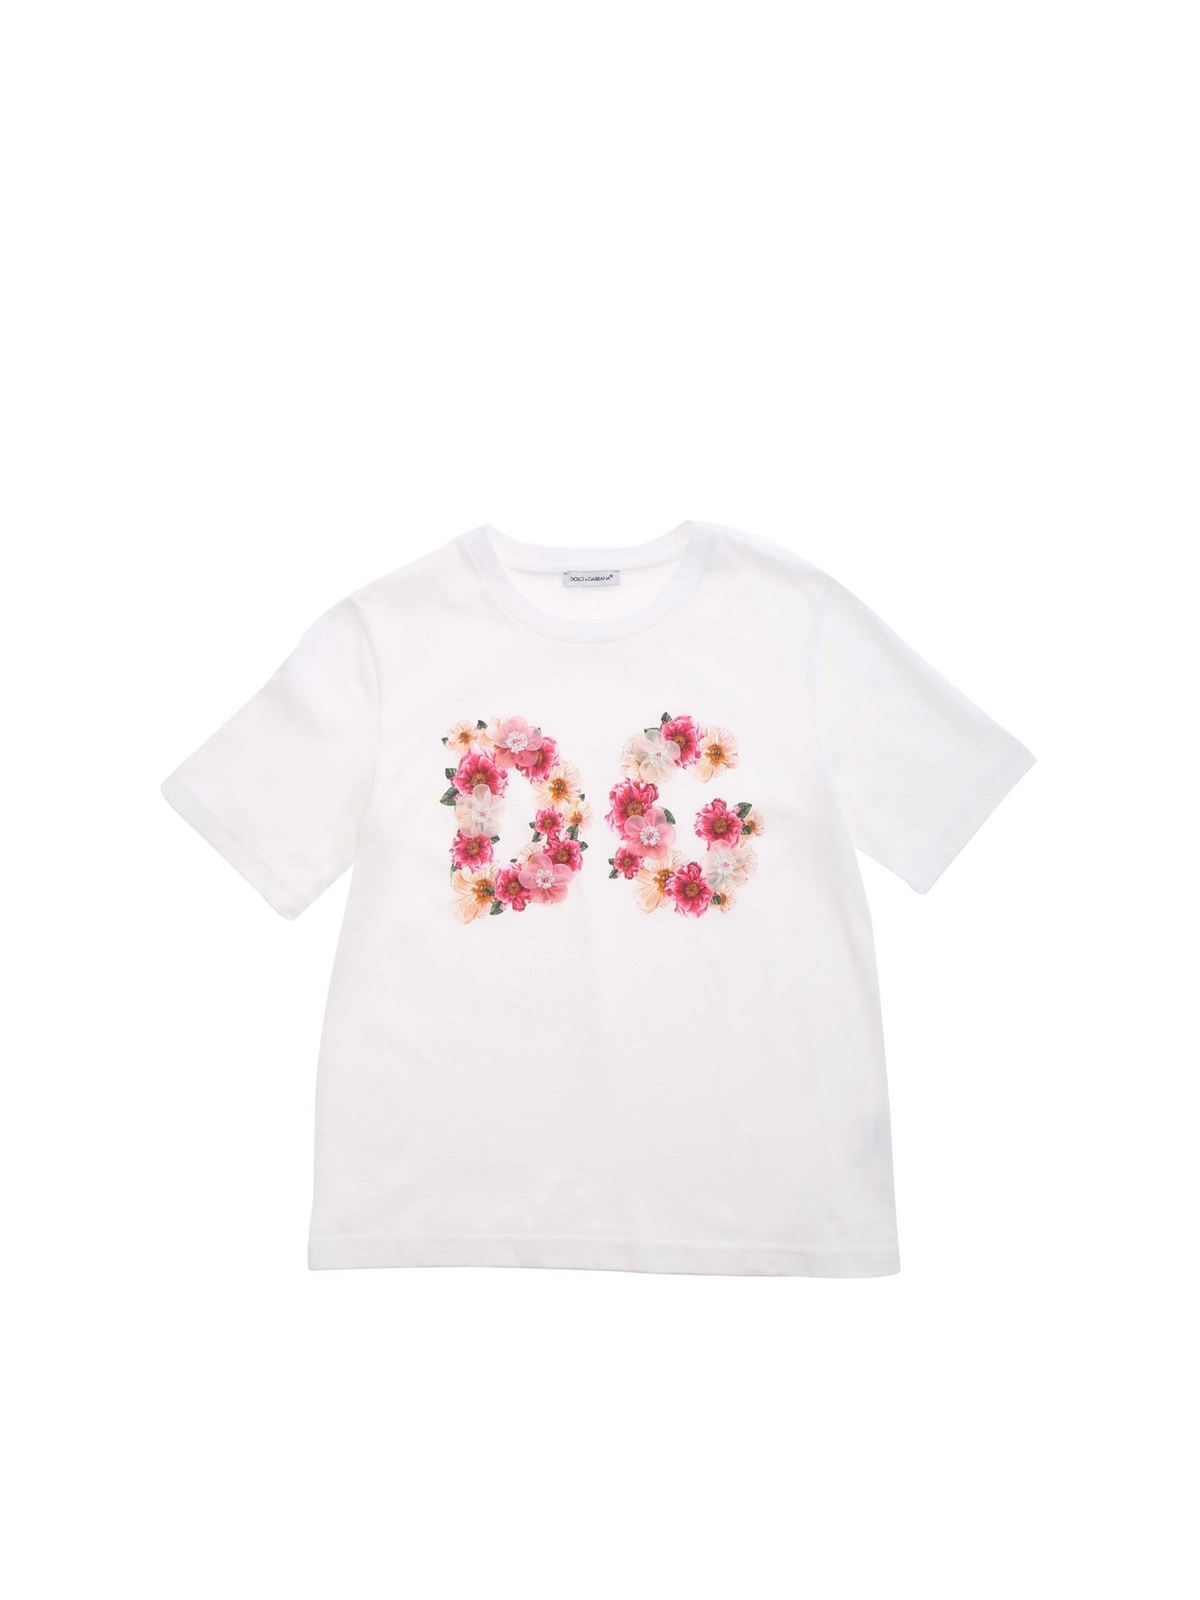 DOLCE & GABBANA JR FLOWERS T-SHIRT IN WHITE